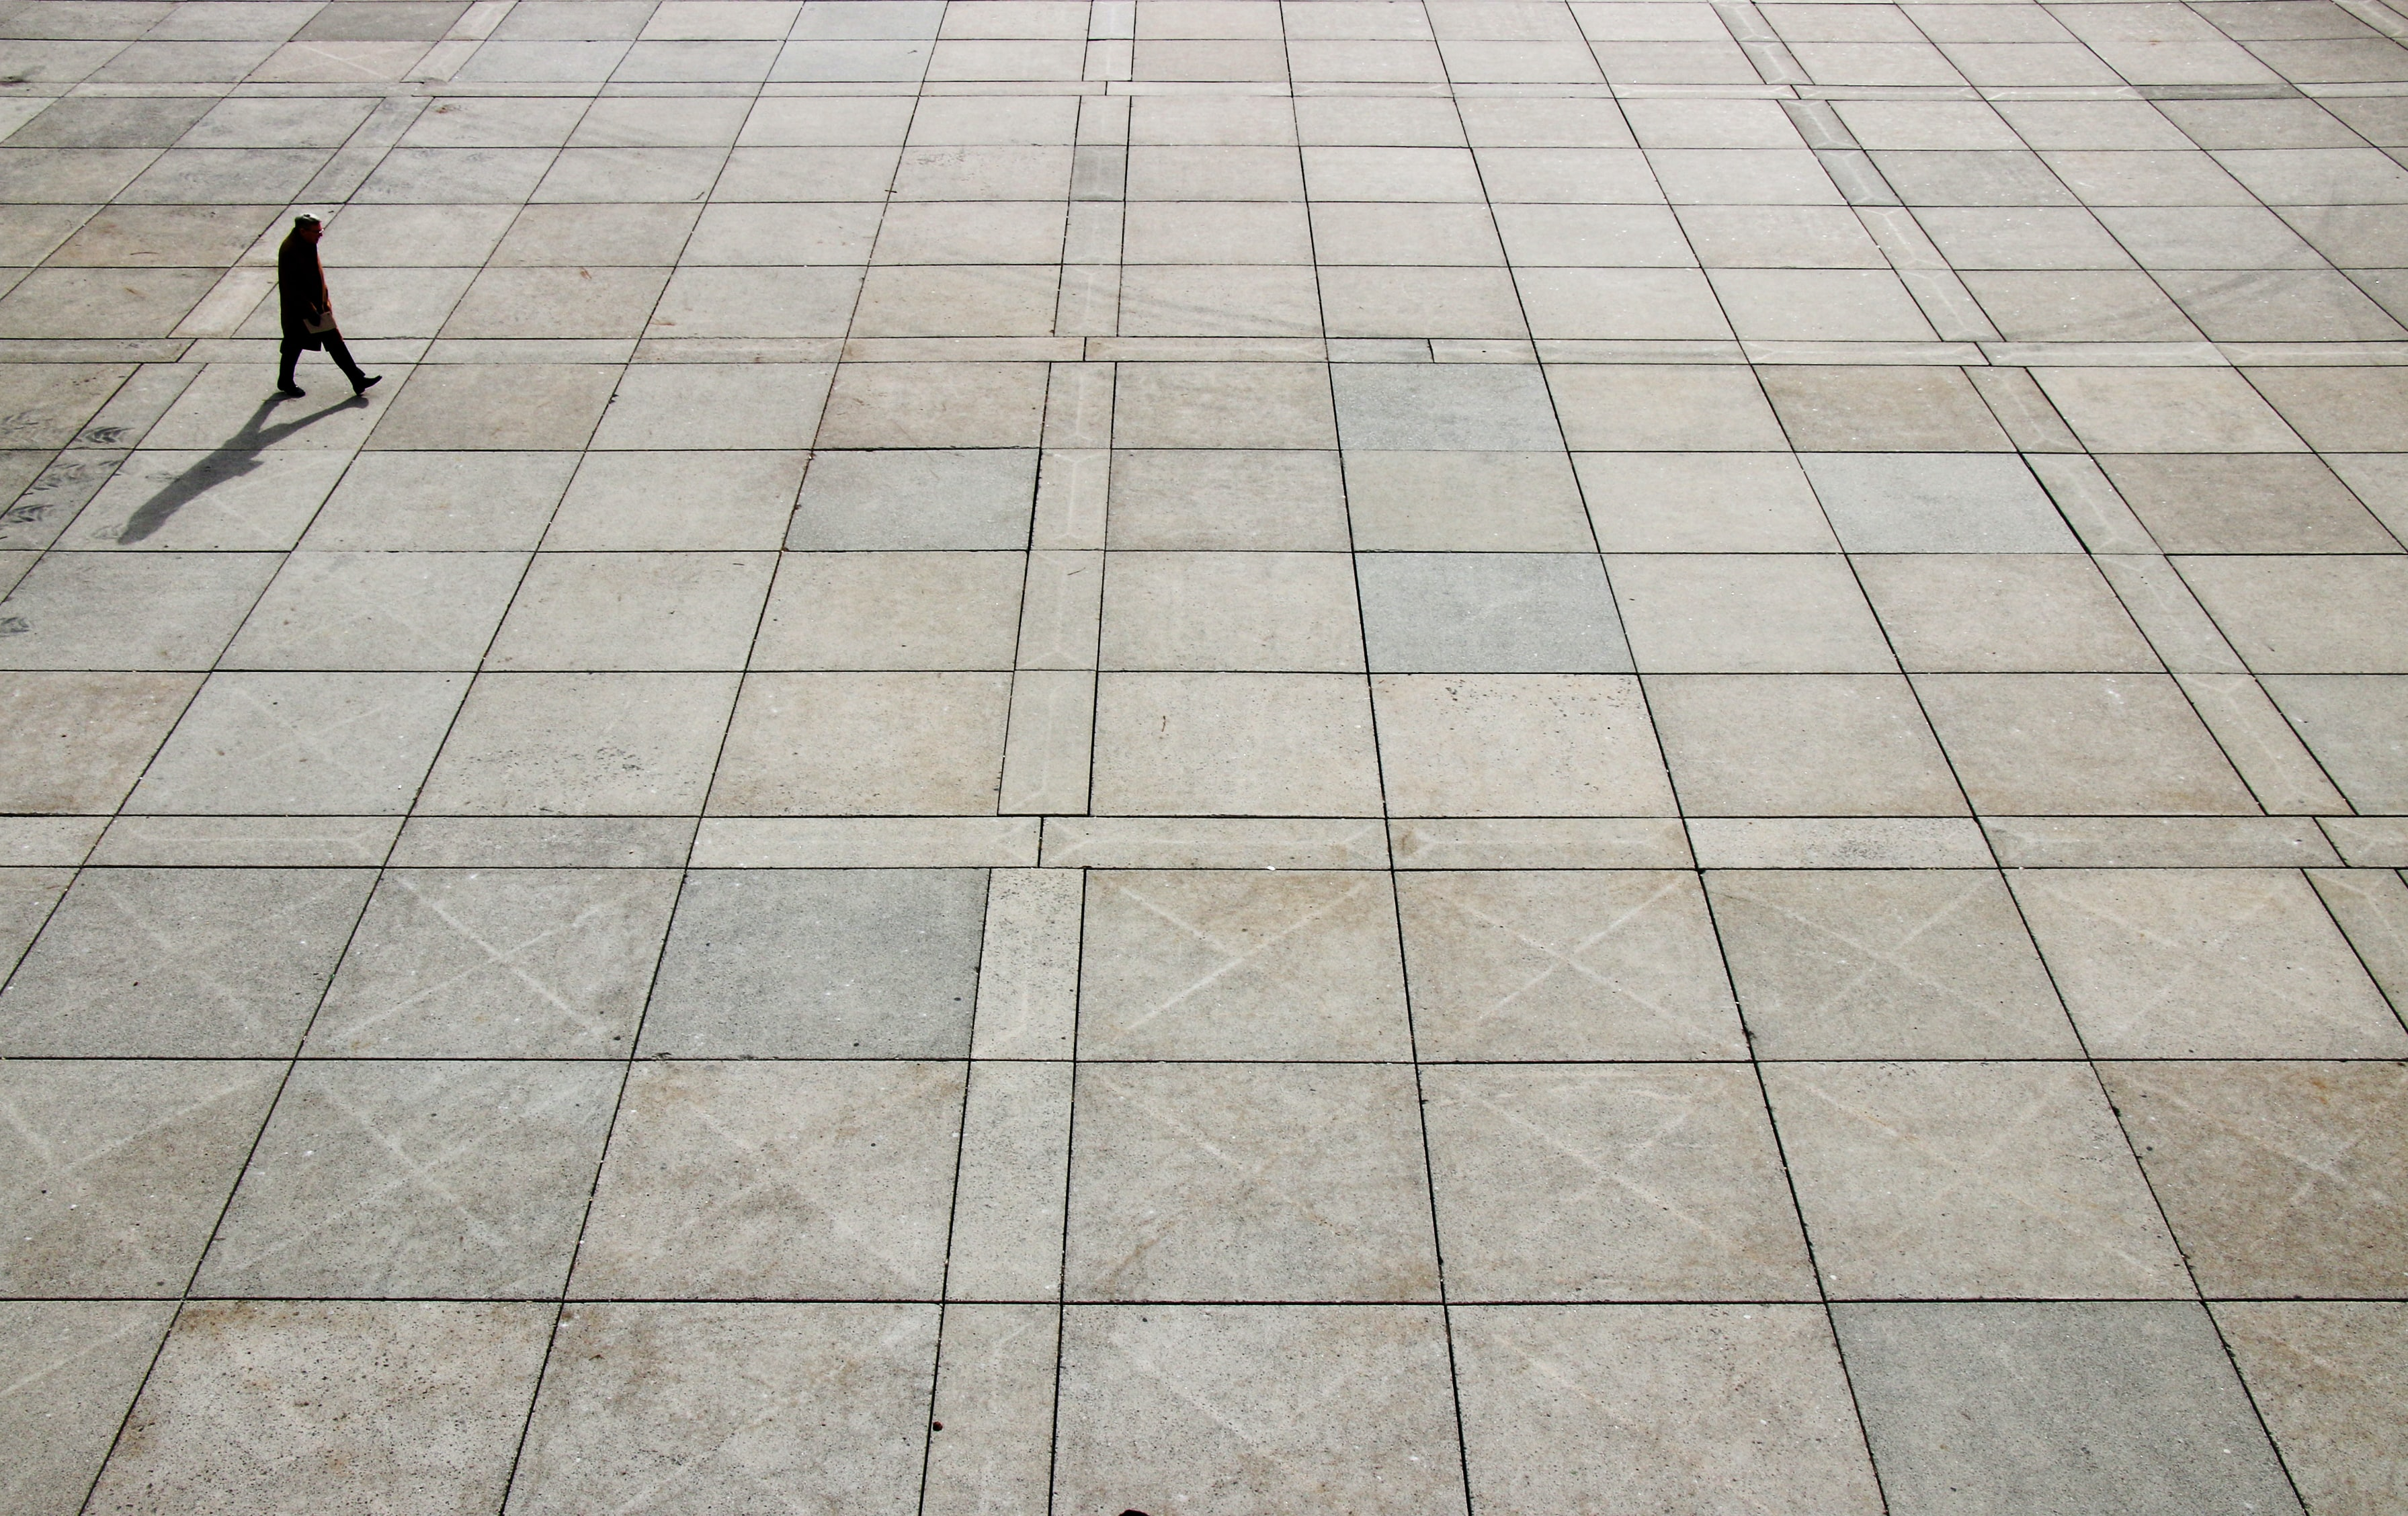 A high shot of a lone person walking across a large plaza